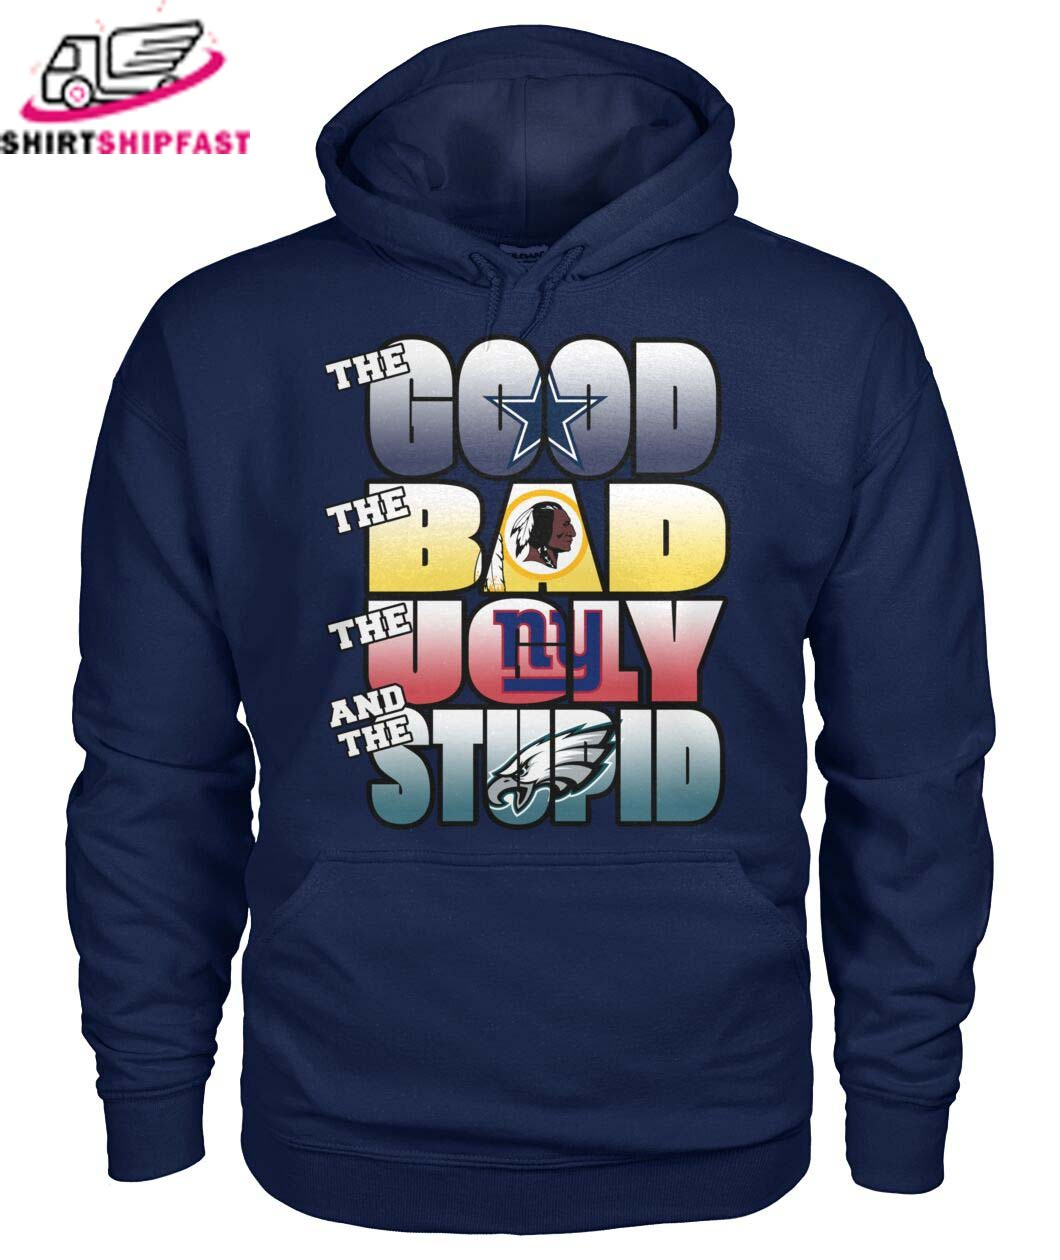 Cowboys The Good Redskins The Bad New York Giants The Ugly And Philadelphia Eagles The Stupid hoodie